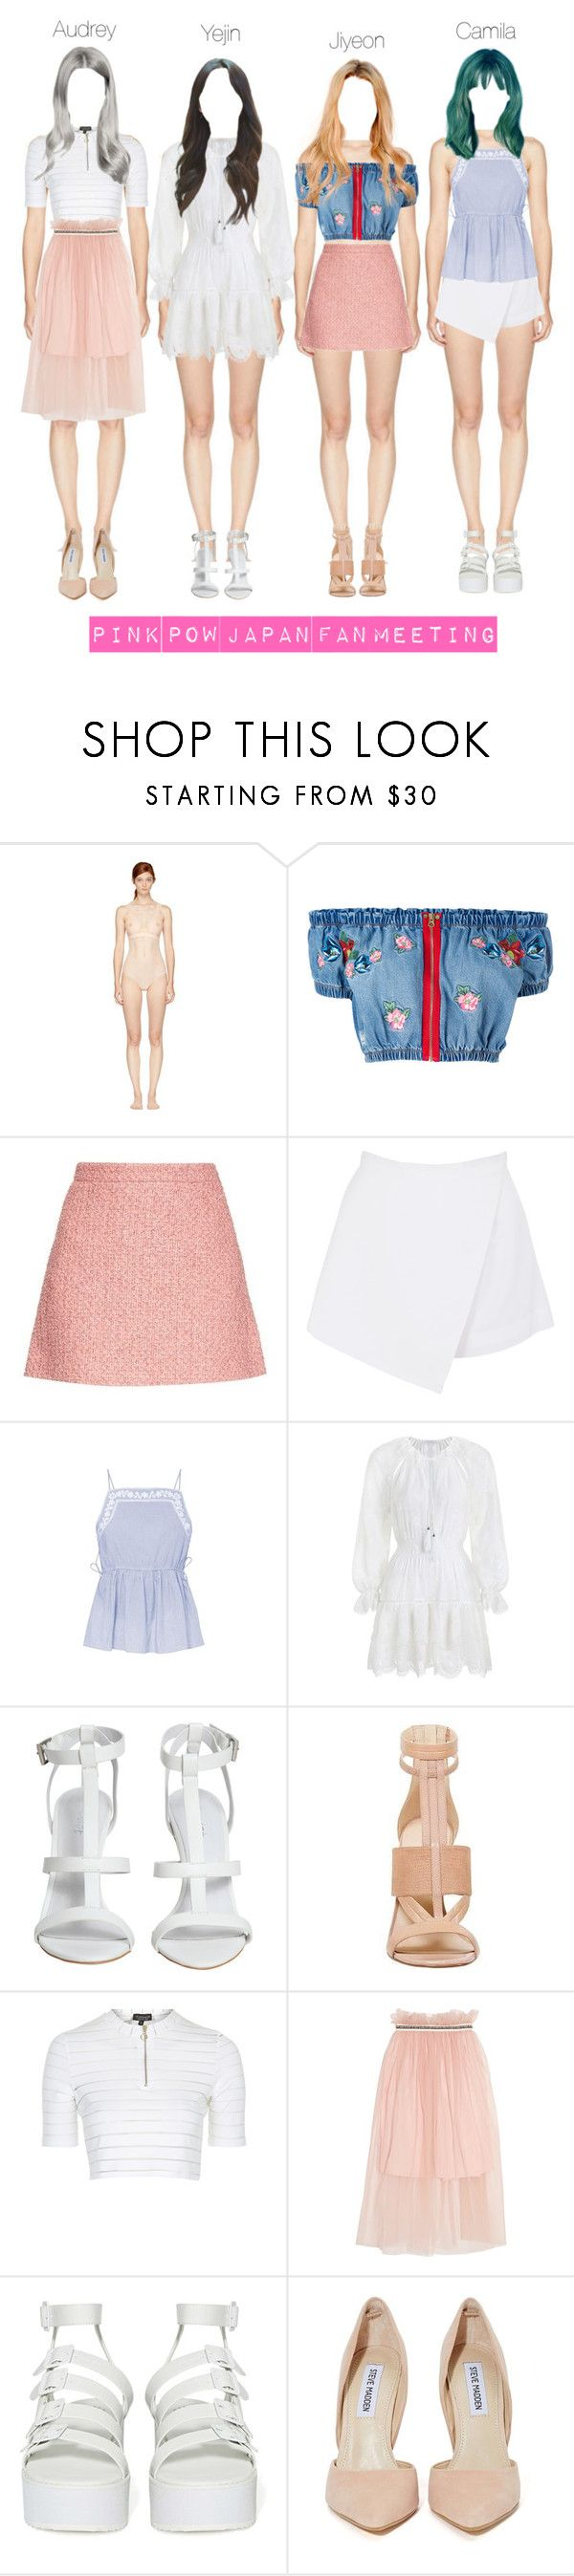 """""""Pink Pow Japan Fan Meet"""" by celesteneo ❤ liked on Polyvore featuring STELLA McCARTNEY, House of Holland, Gucci, BeginAgain Toys, Zimmermann, Topshop, Mother of Pearl, Y.R.U. and Steve Madden"""